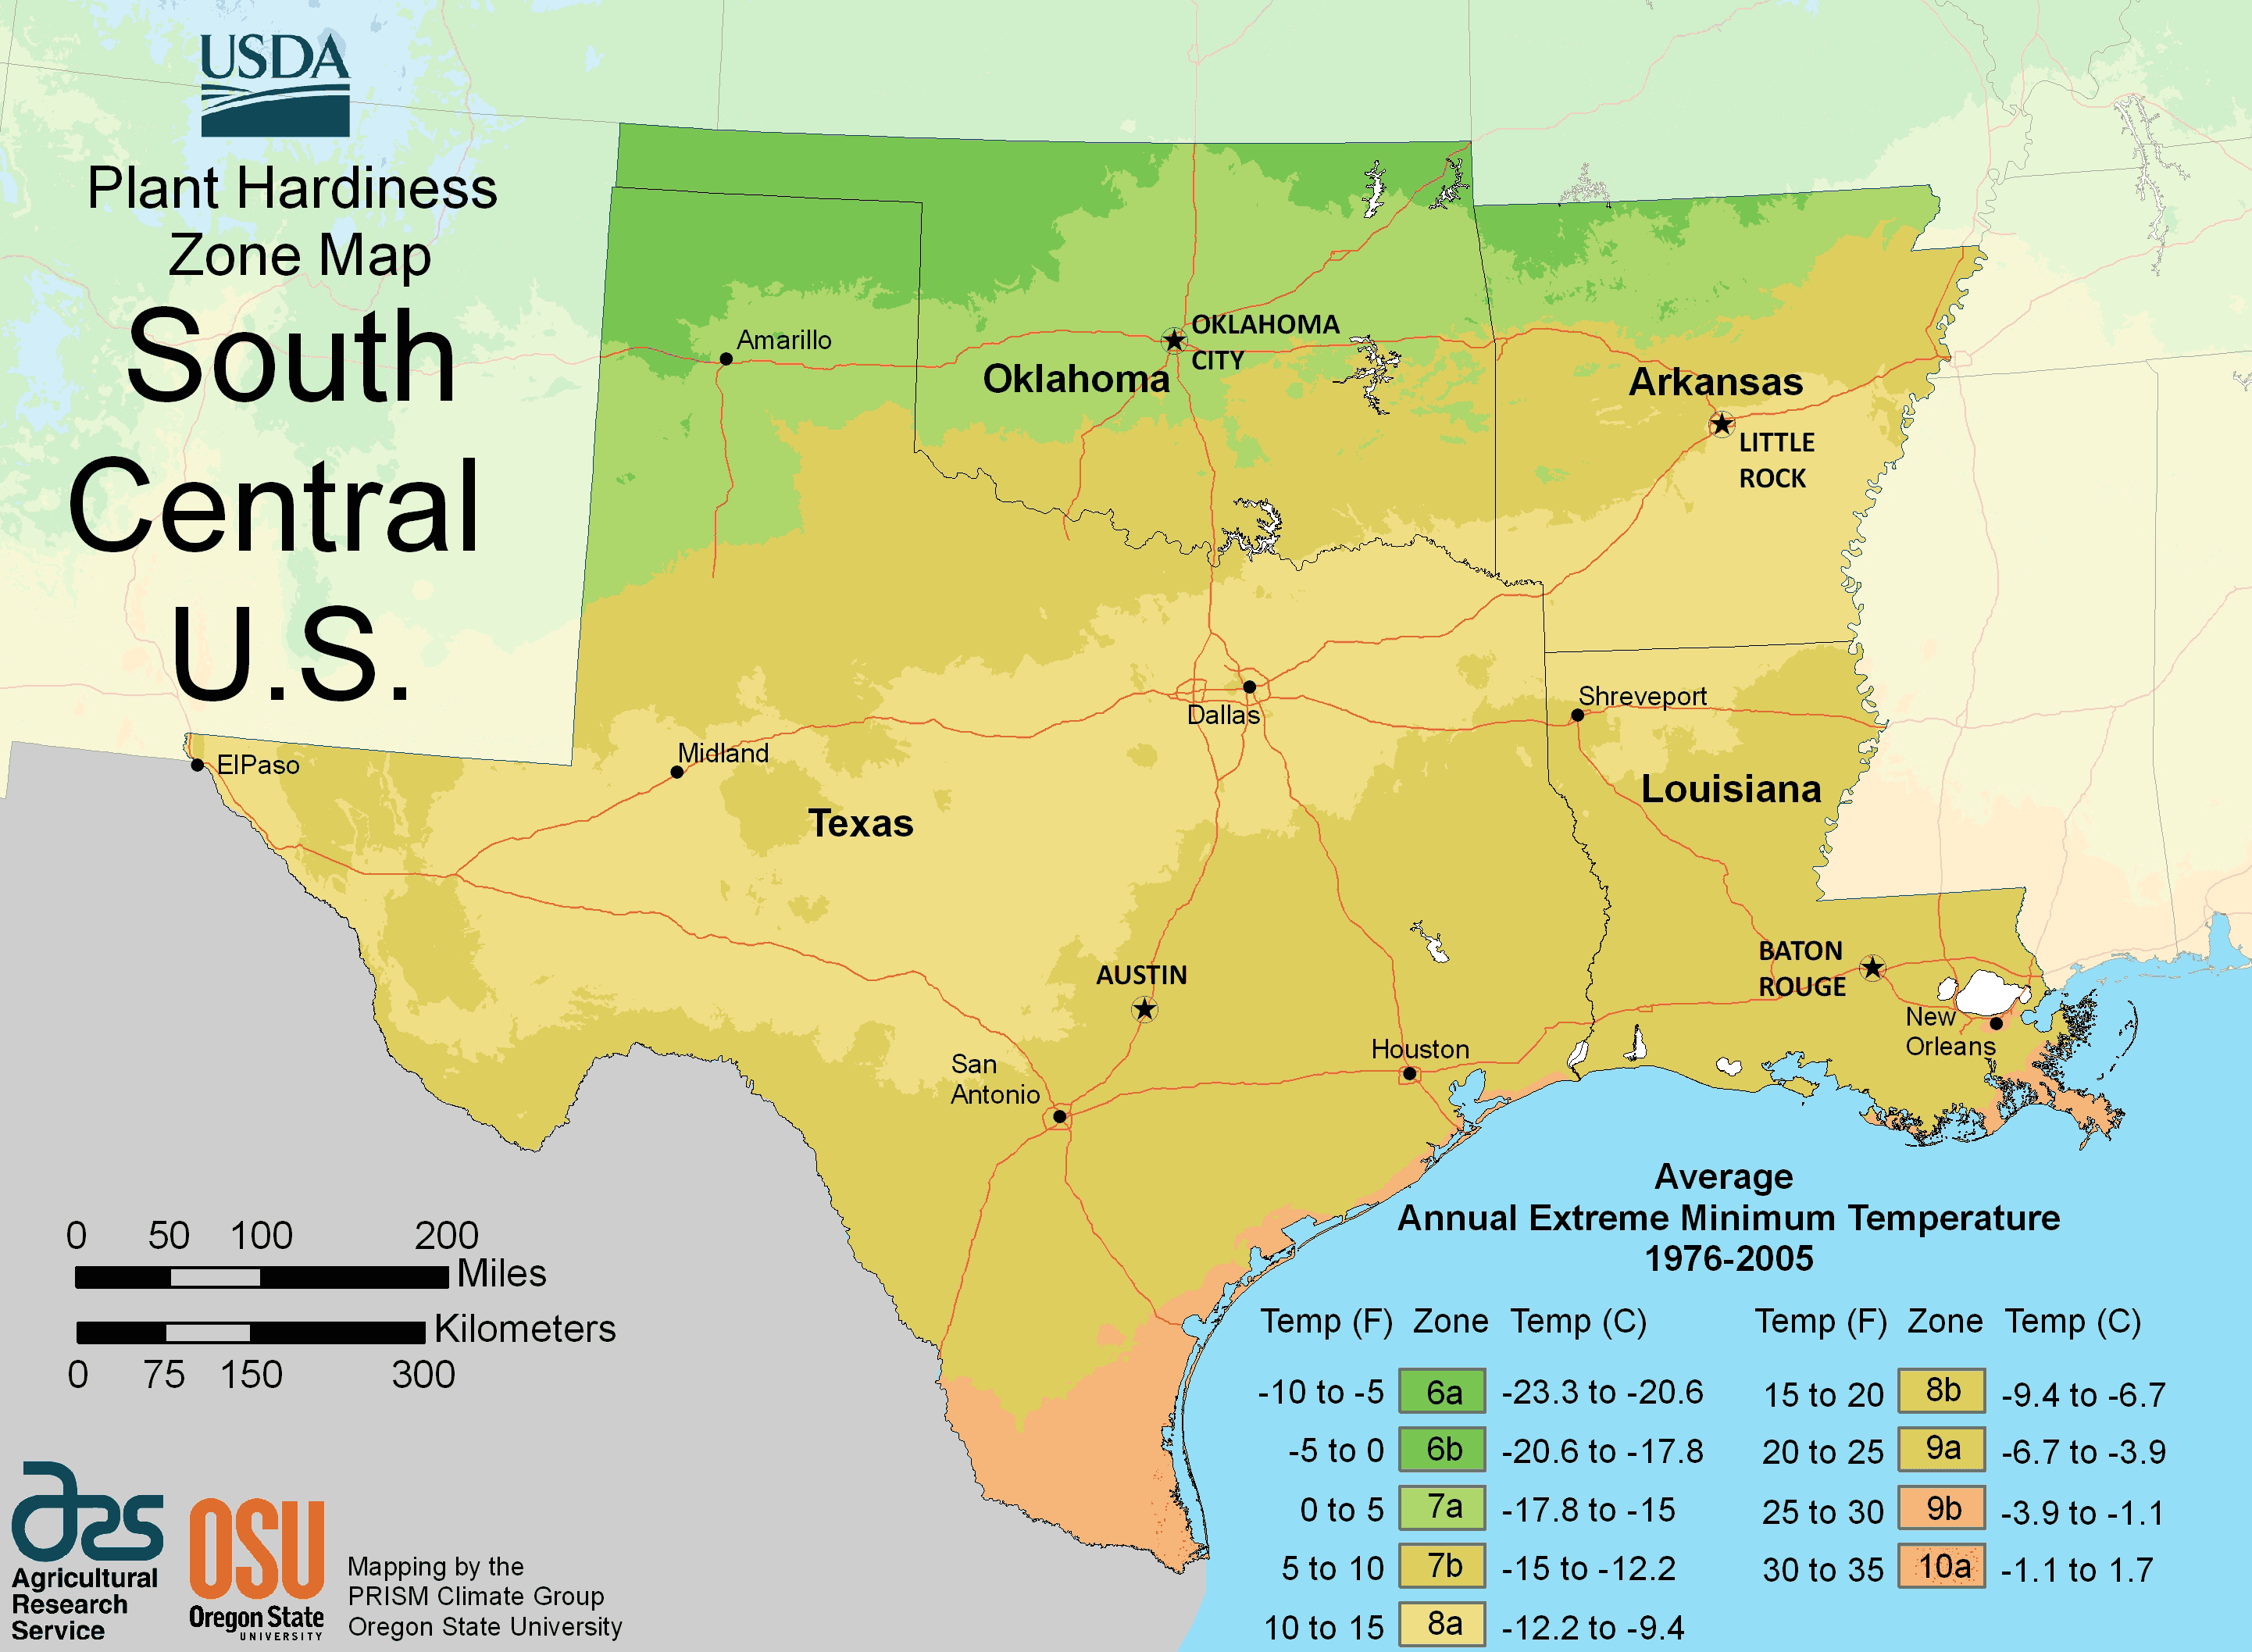 South Central Us Plant Hardiness Zone Map • Mapsof.net